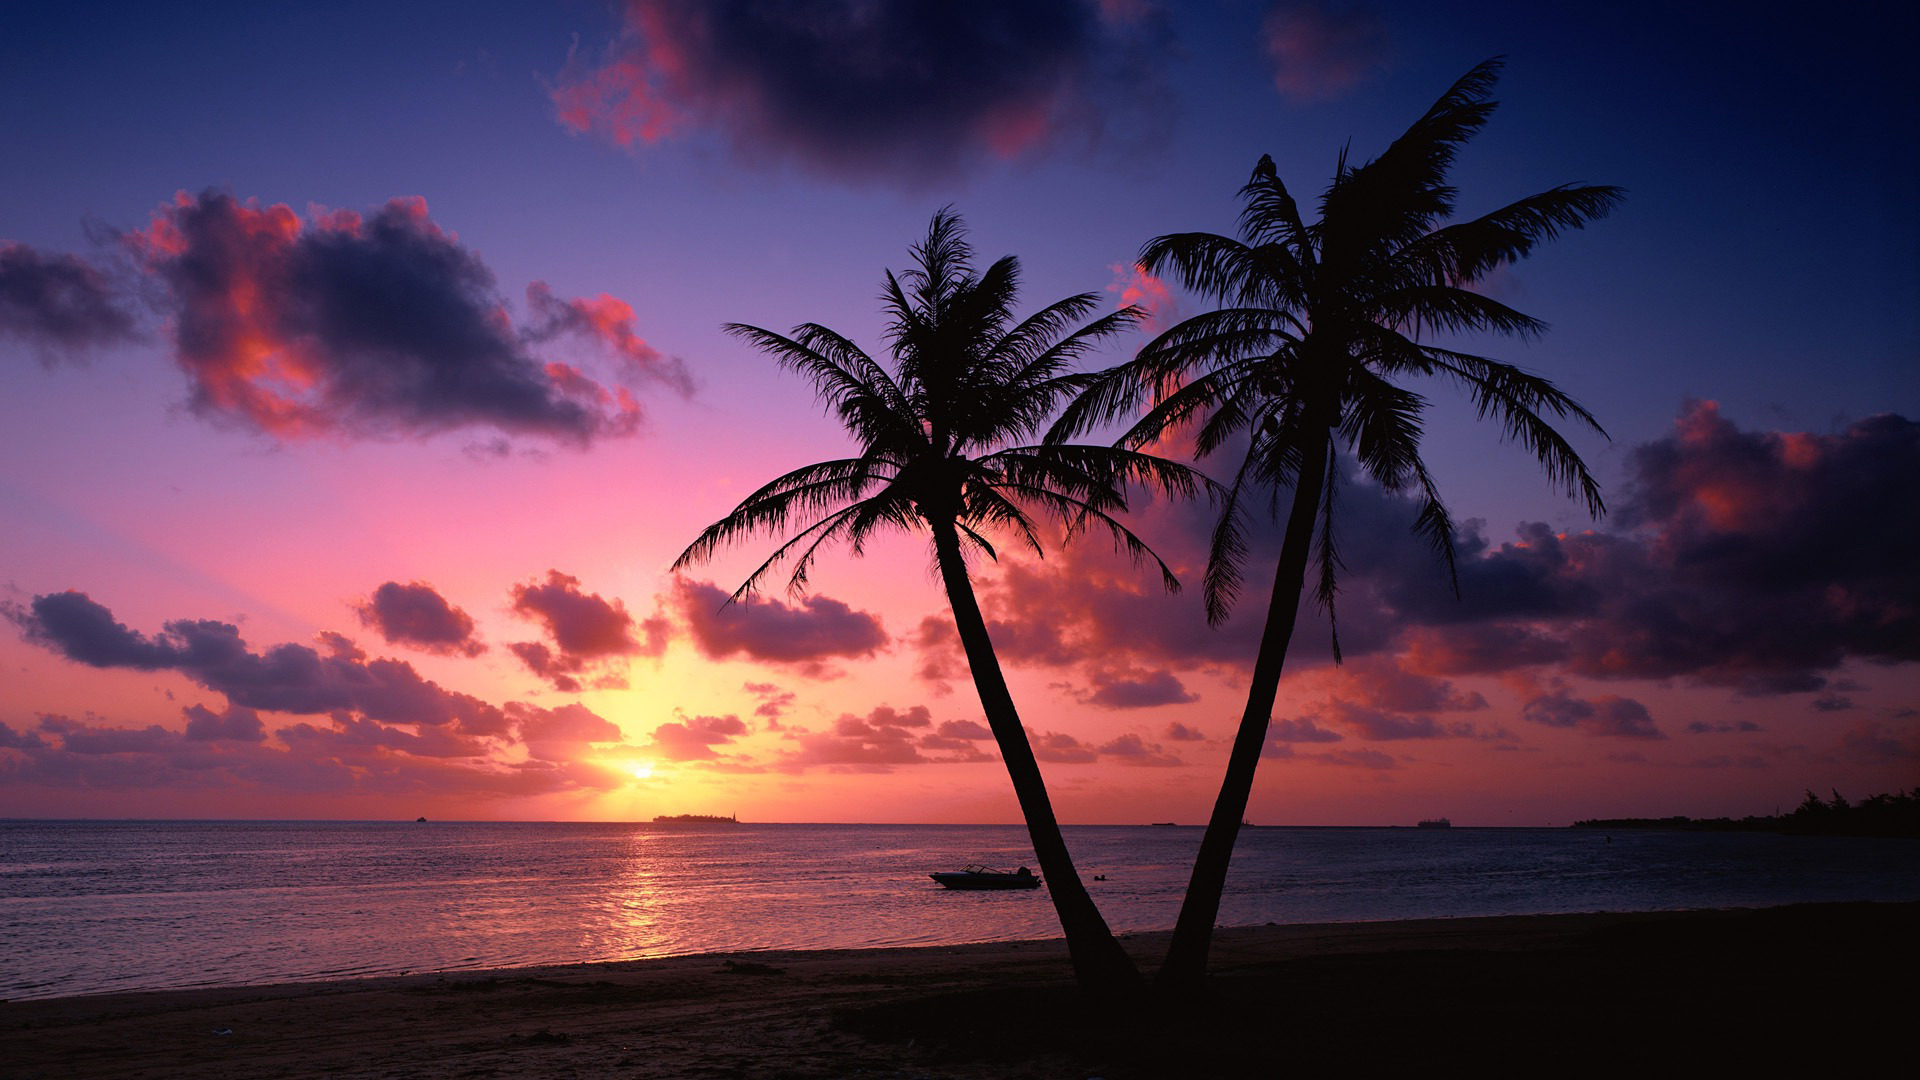 Tropical Beach Sunset Wallpaper Pictures 5 HD Wallpapers